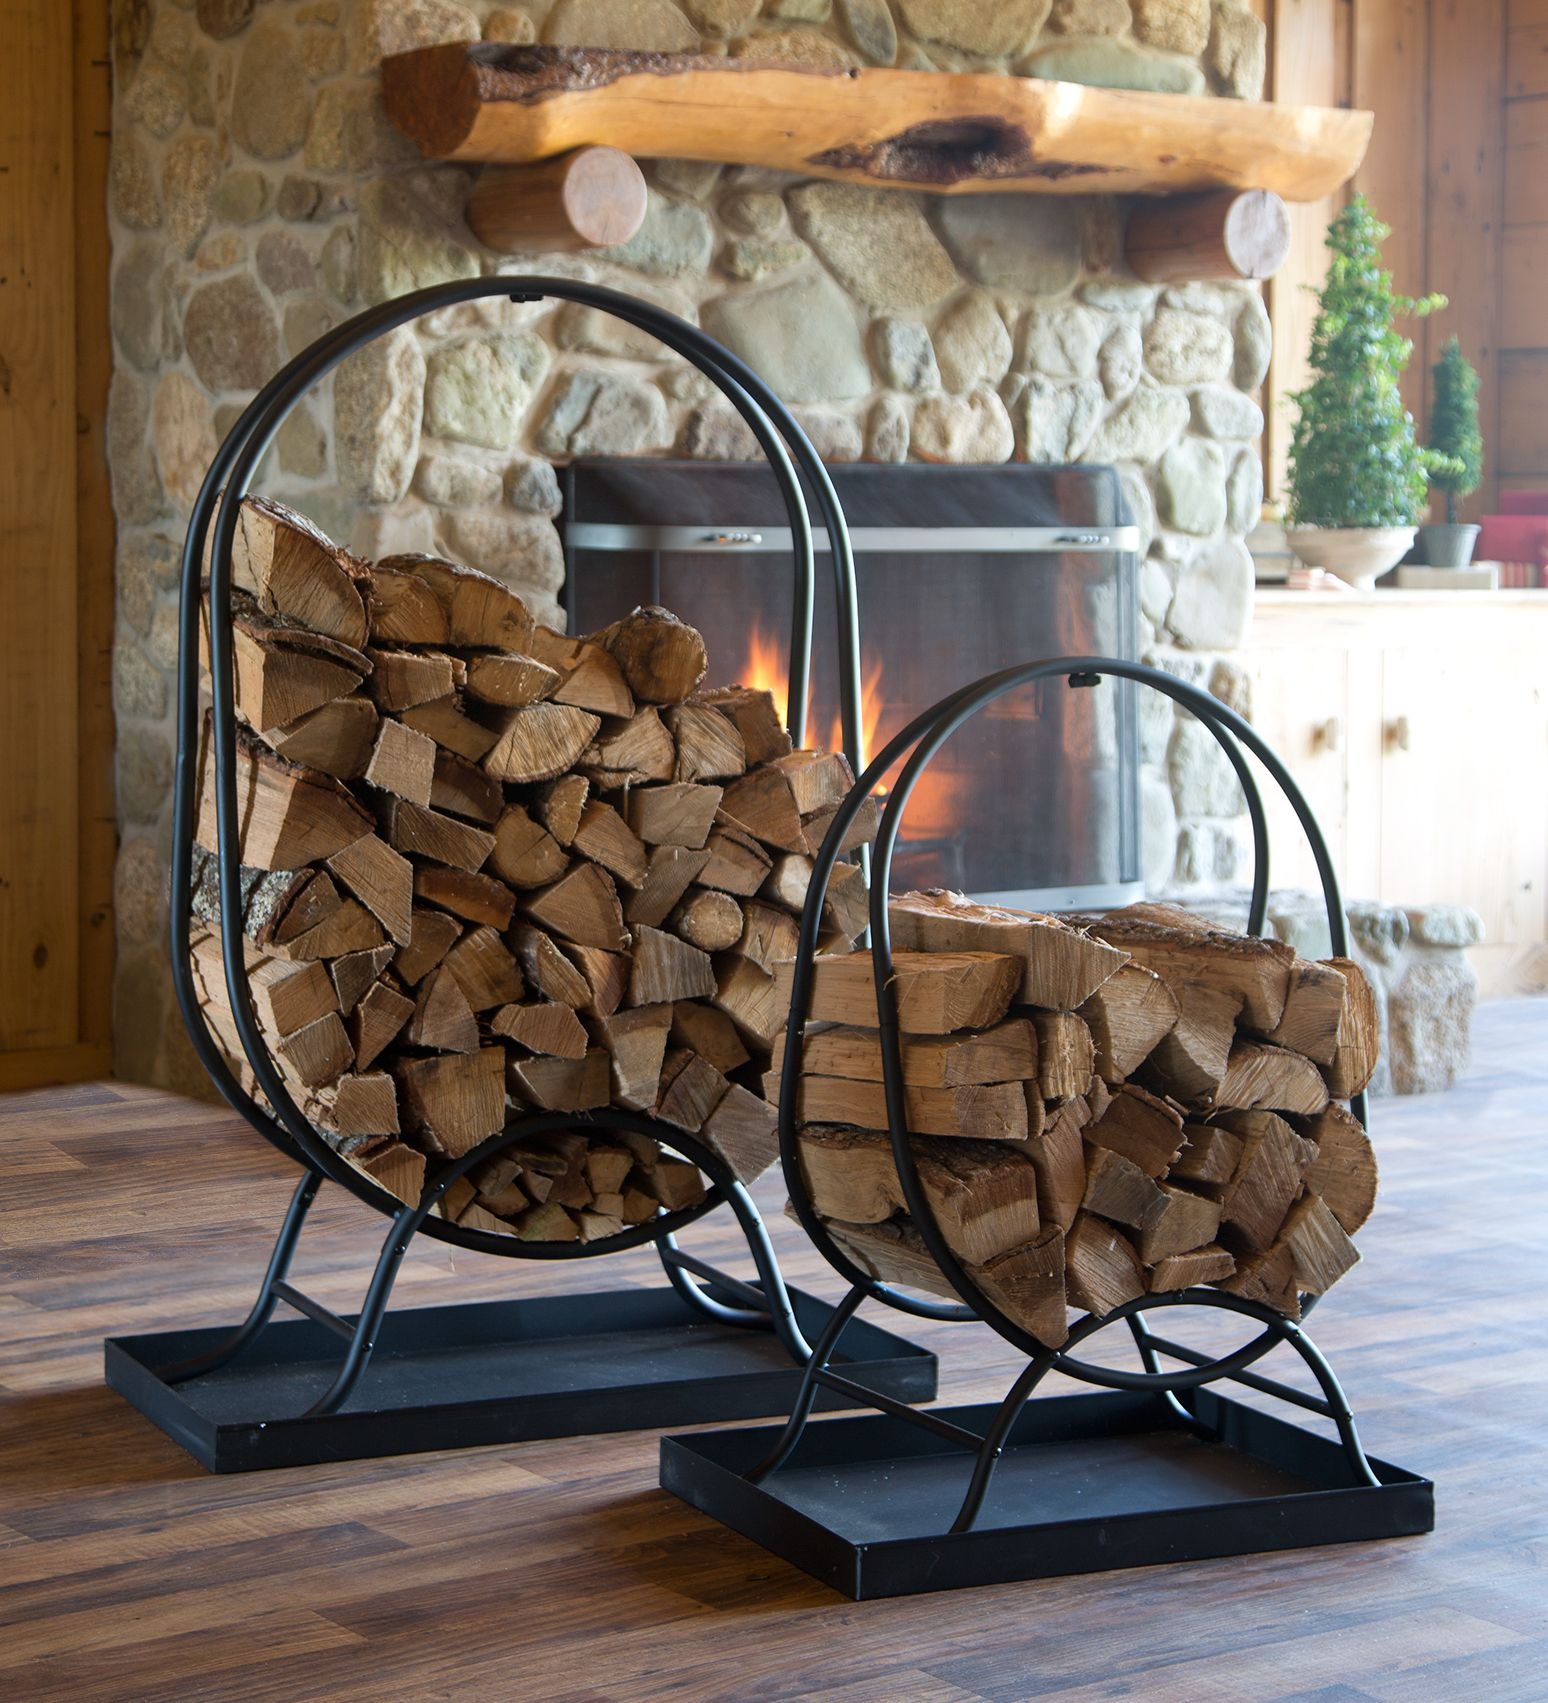 racks ikea stores ideas shelves plans book india retail woodworking for display plate wood shelf rack